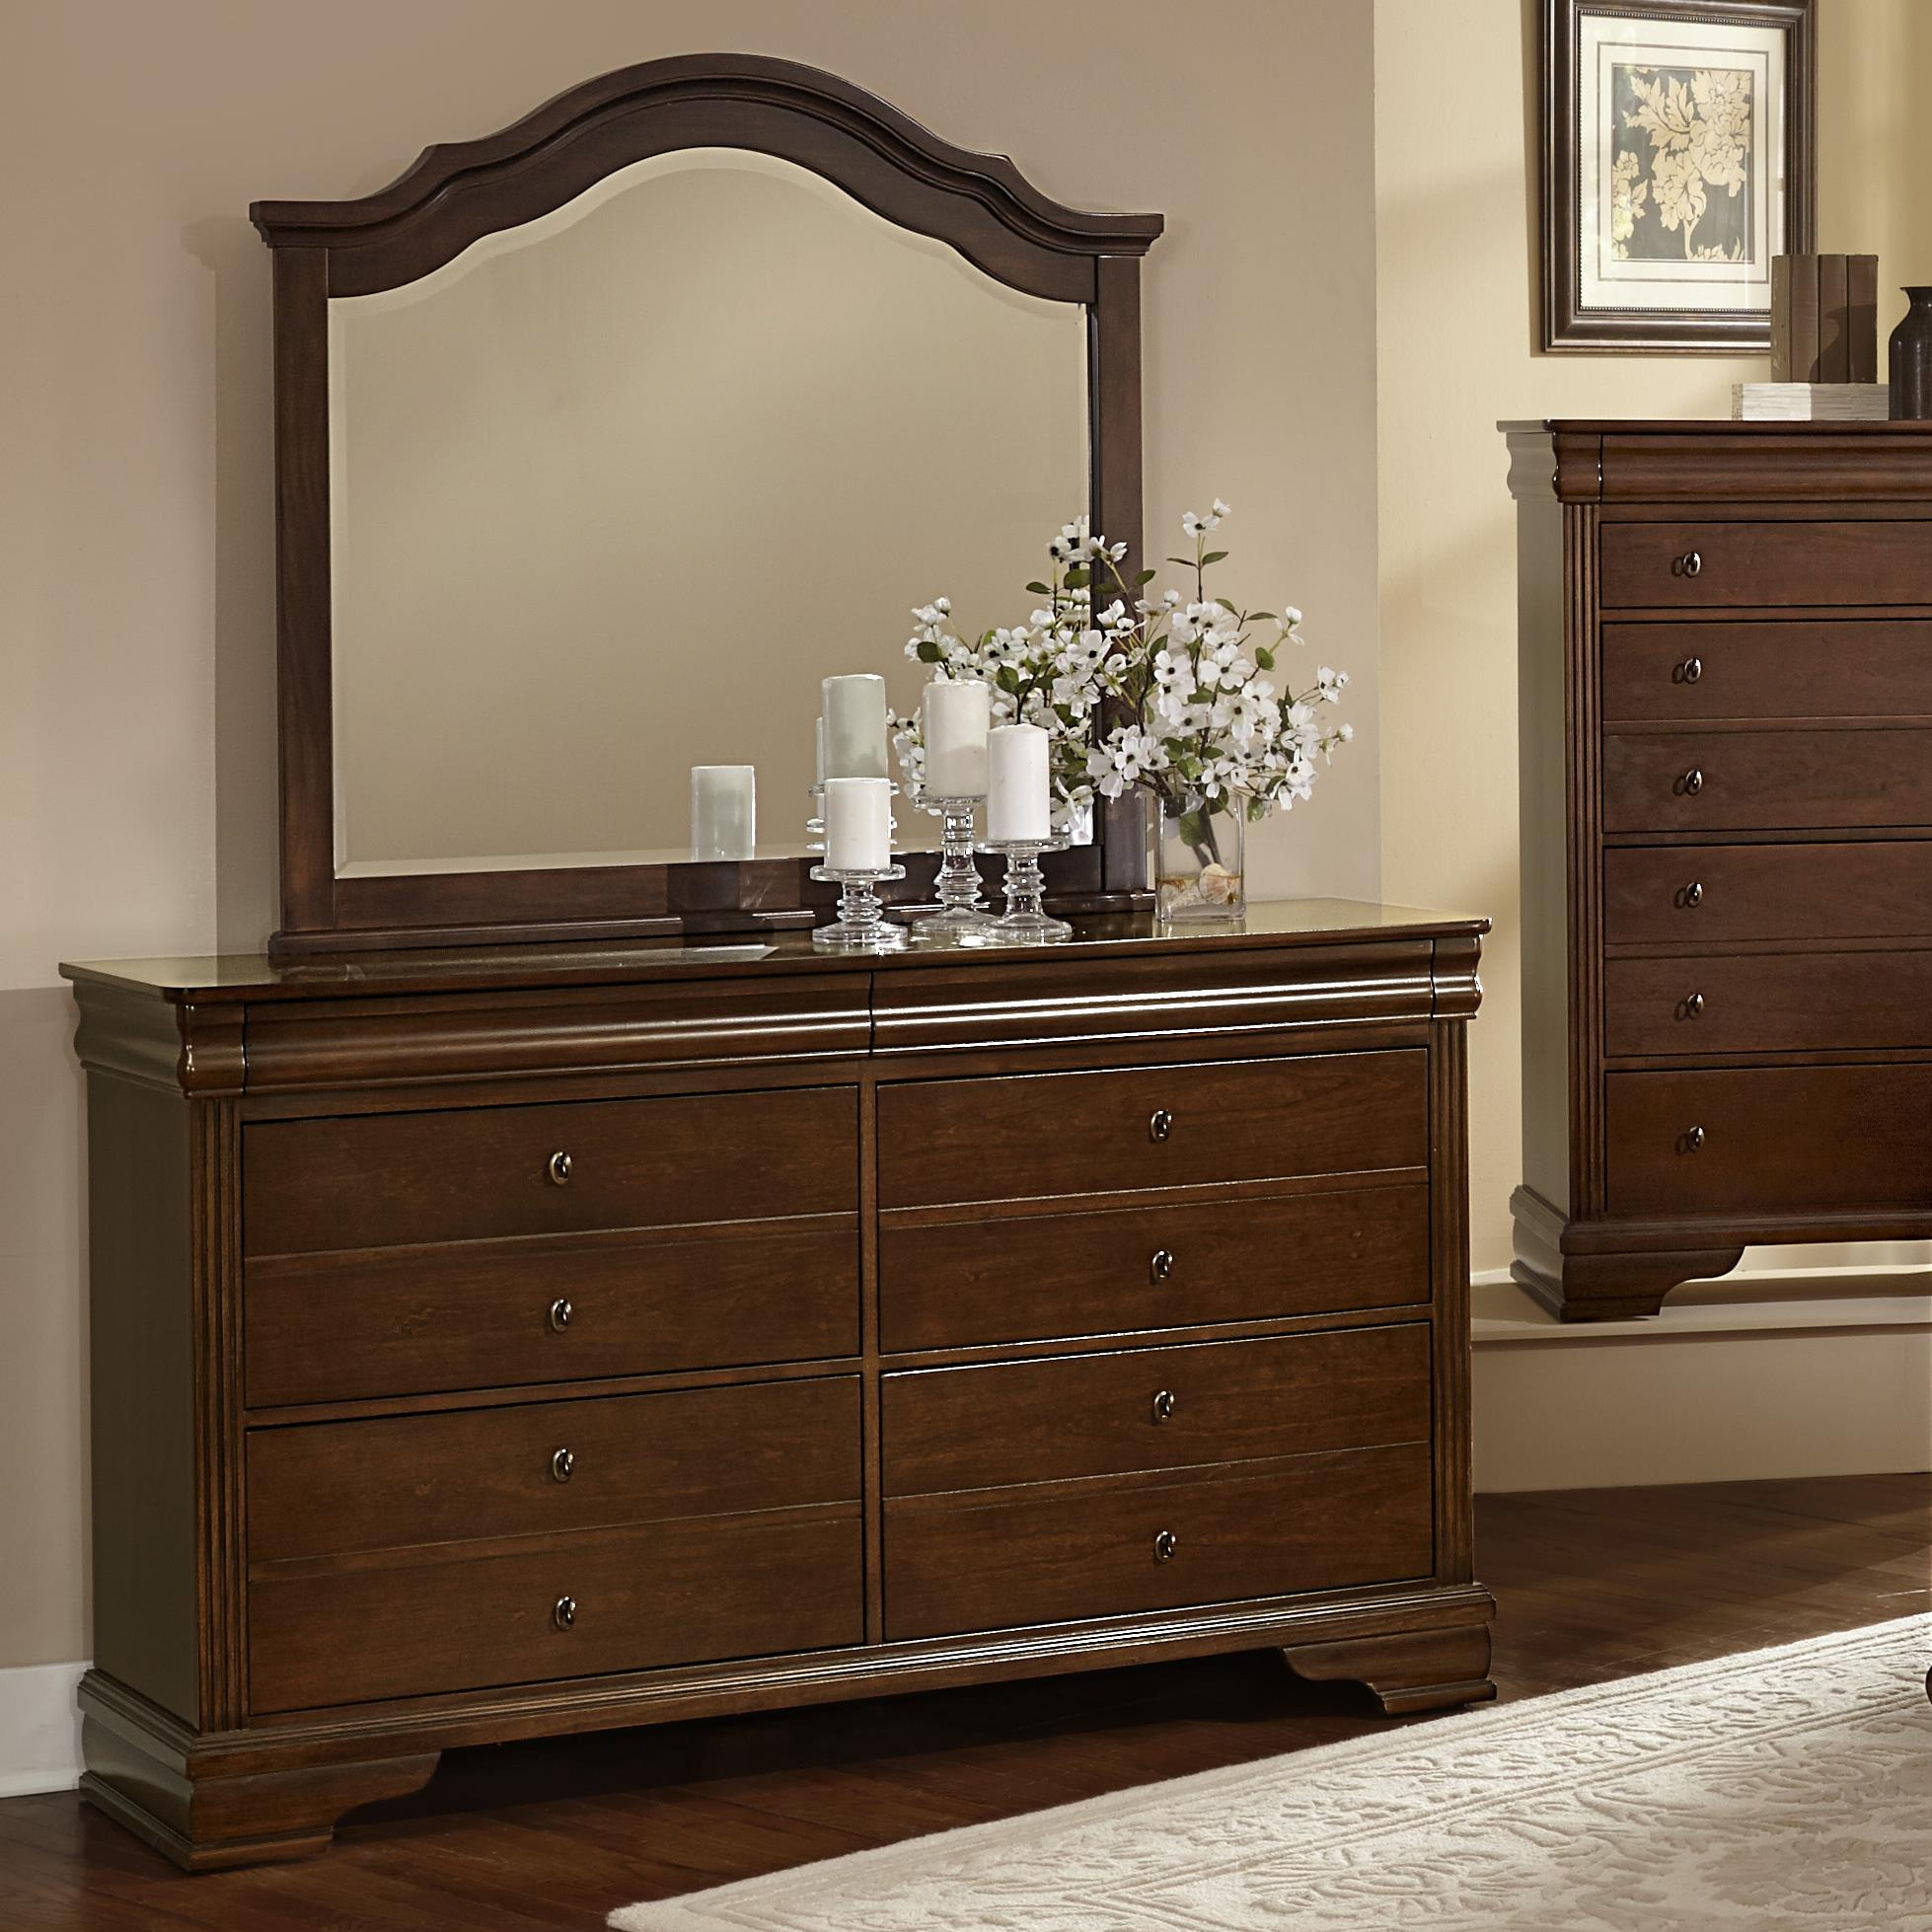 Vaughan Bassett French Market Dresser & Arched Mirror - Item Number: 382-002+447